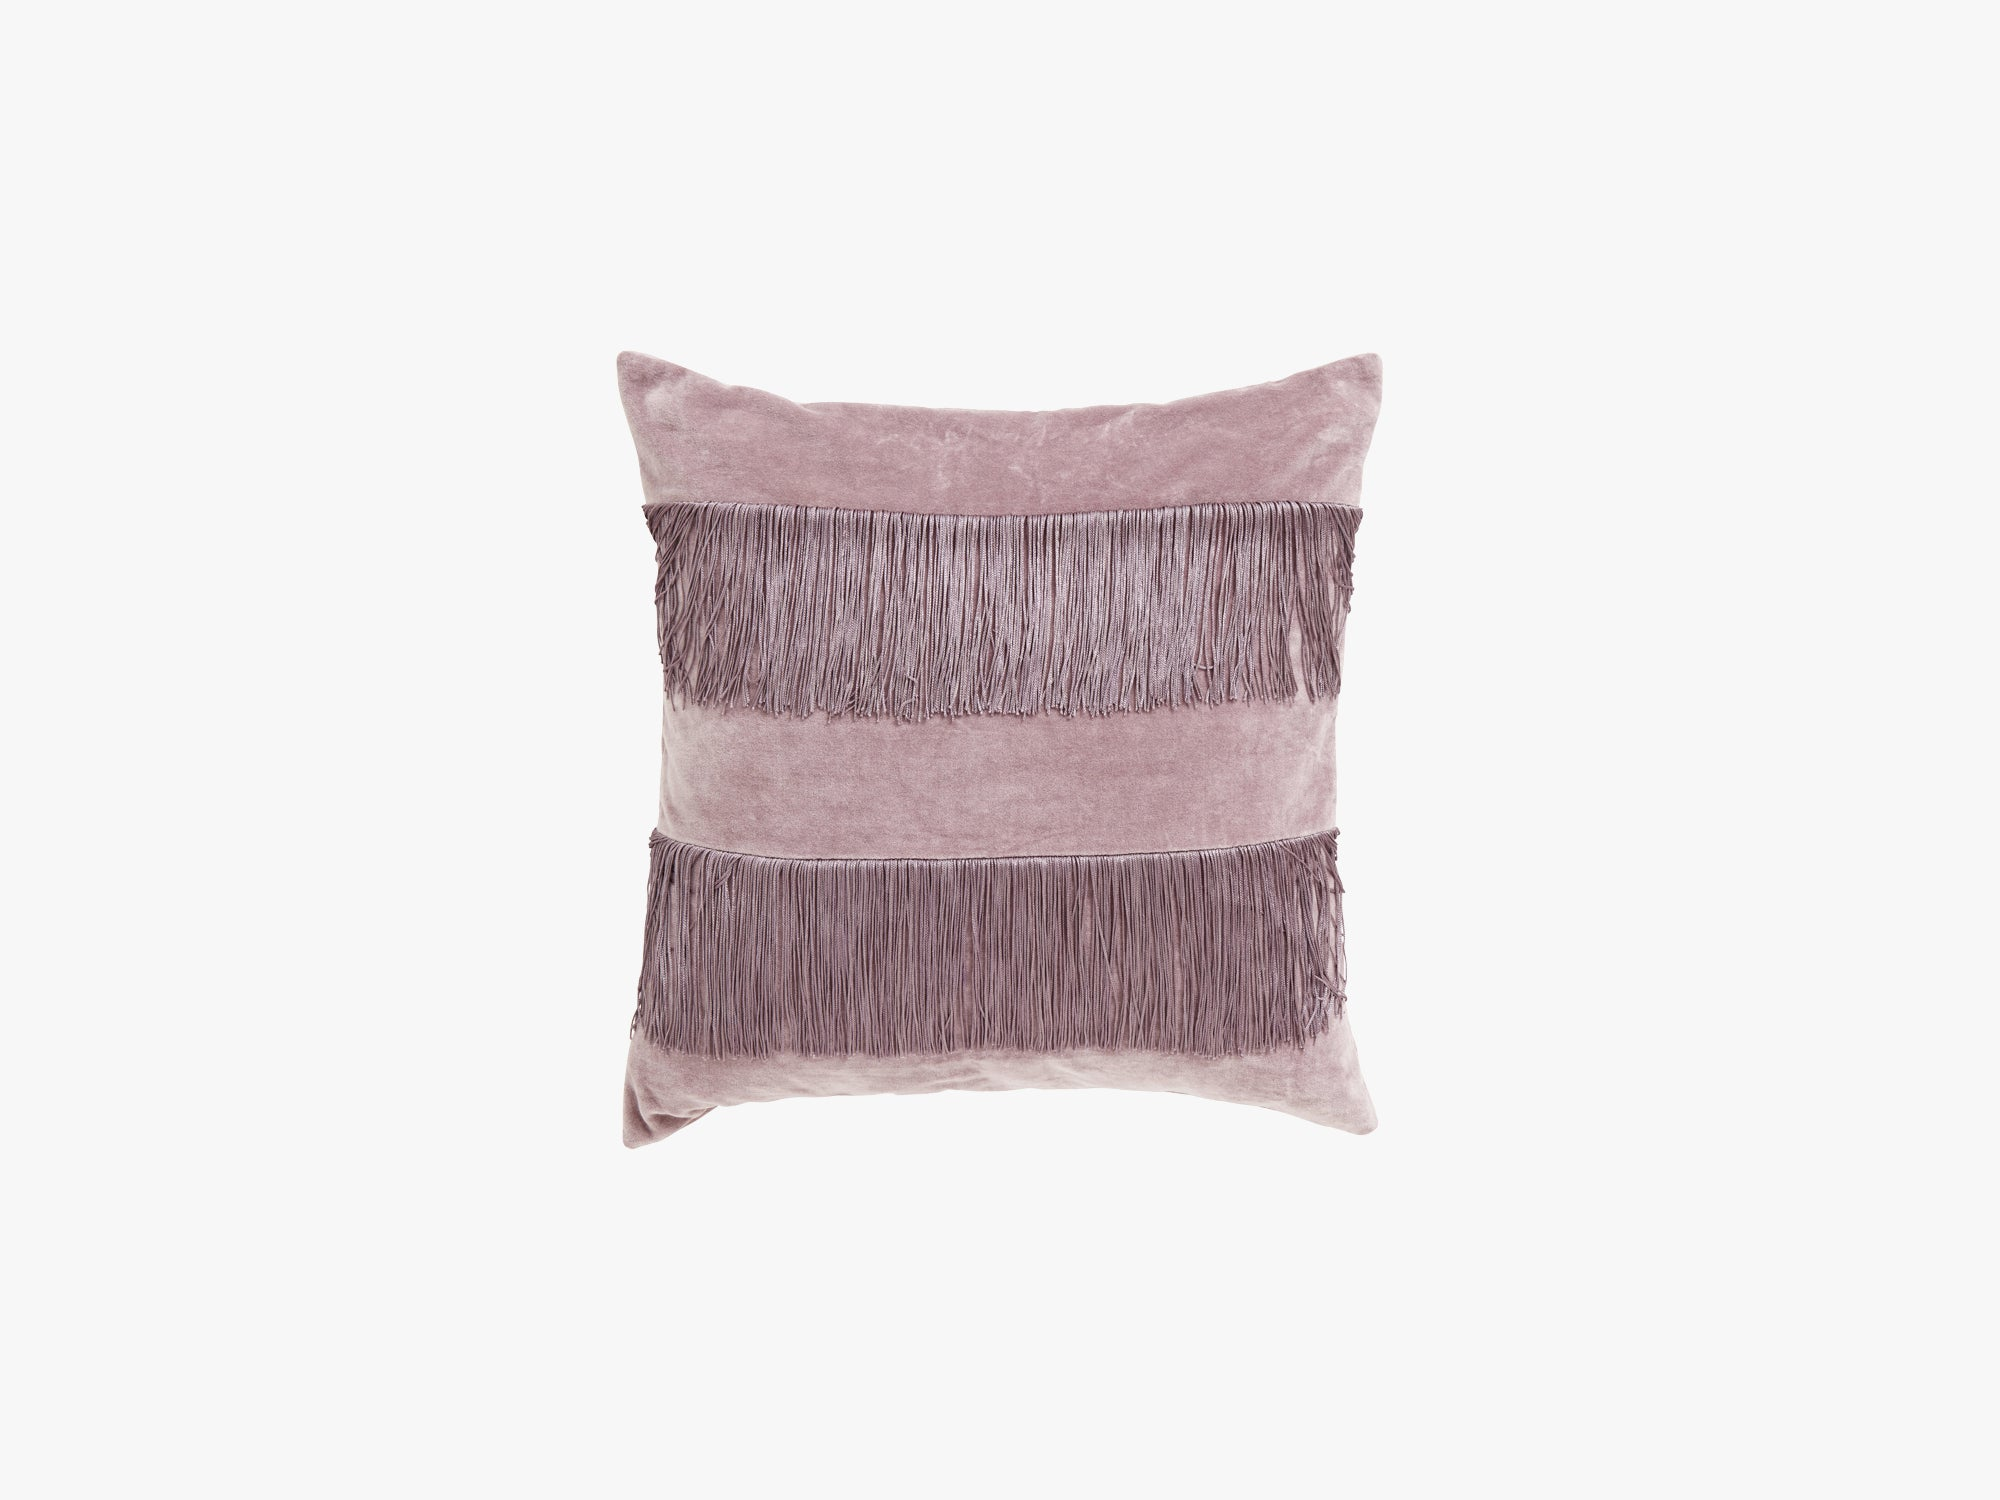 Cushion cover w/fringes, lpurple fra Nordal